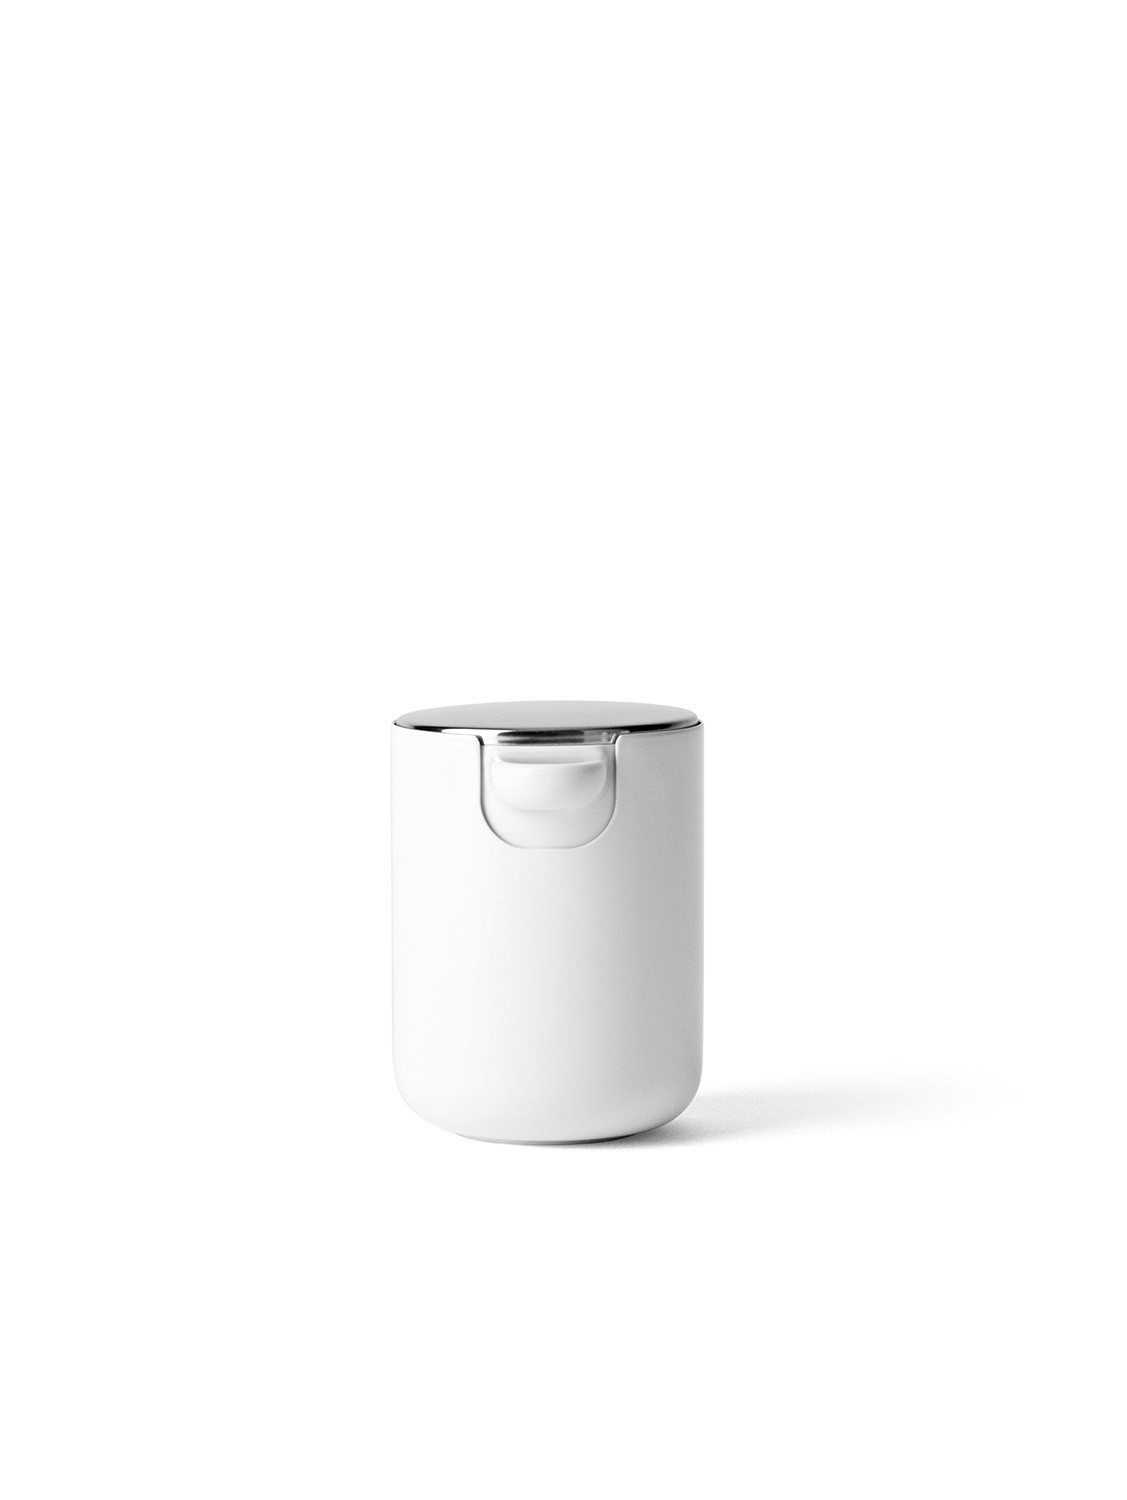 Seifenspender Bad Menu Soap Dispenser White Seifenspender Bad